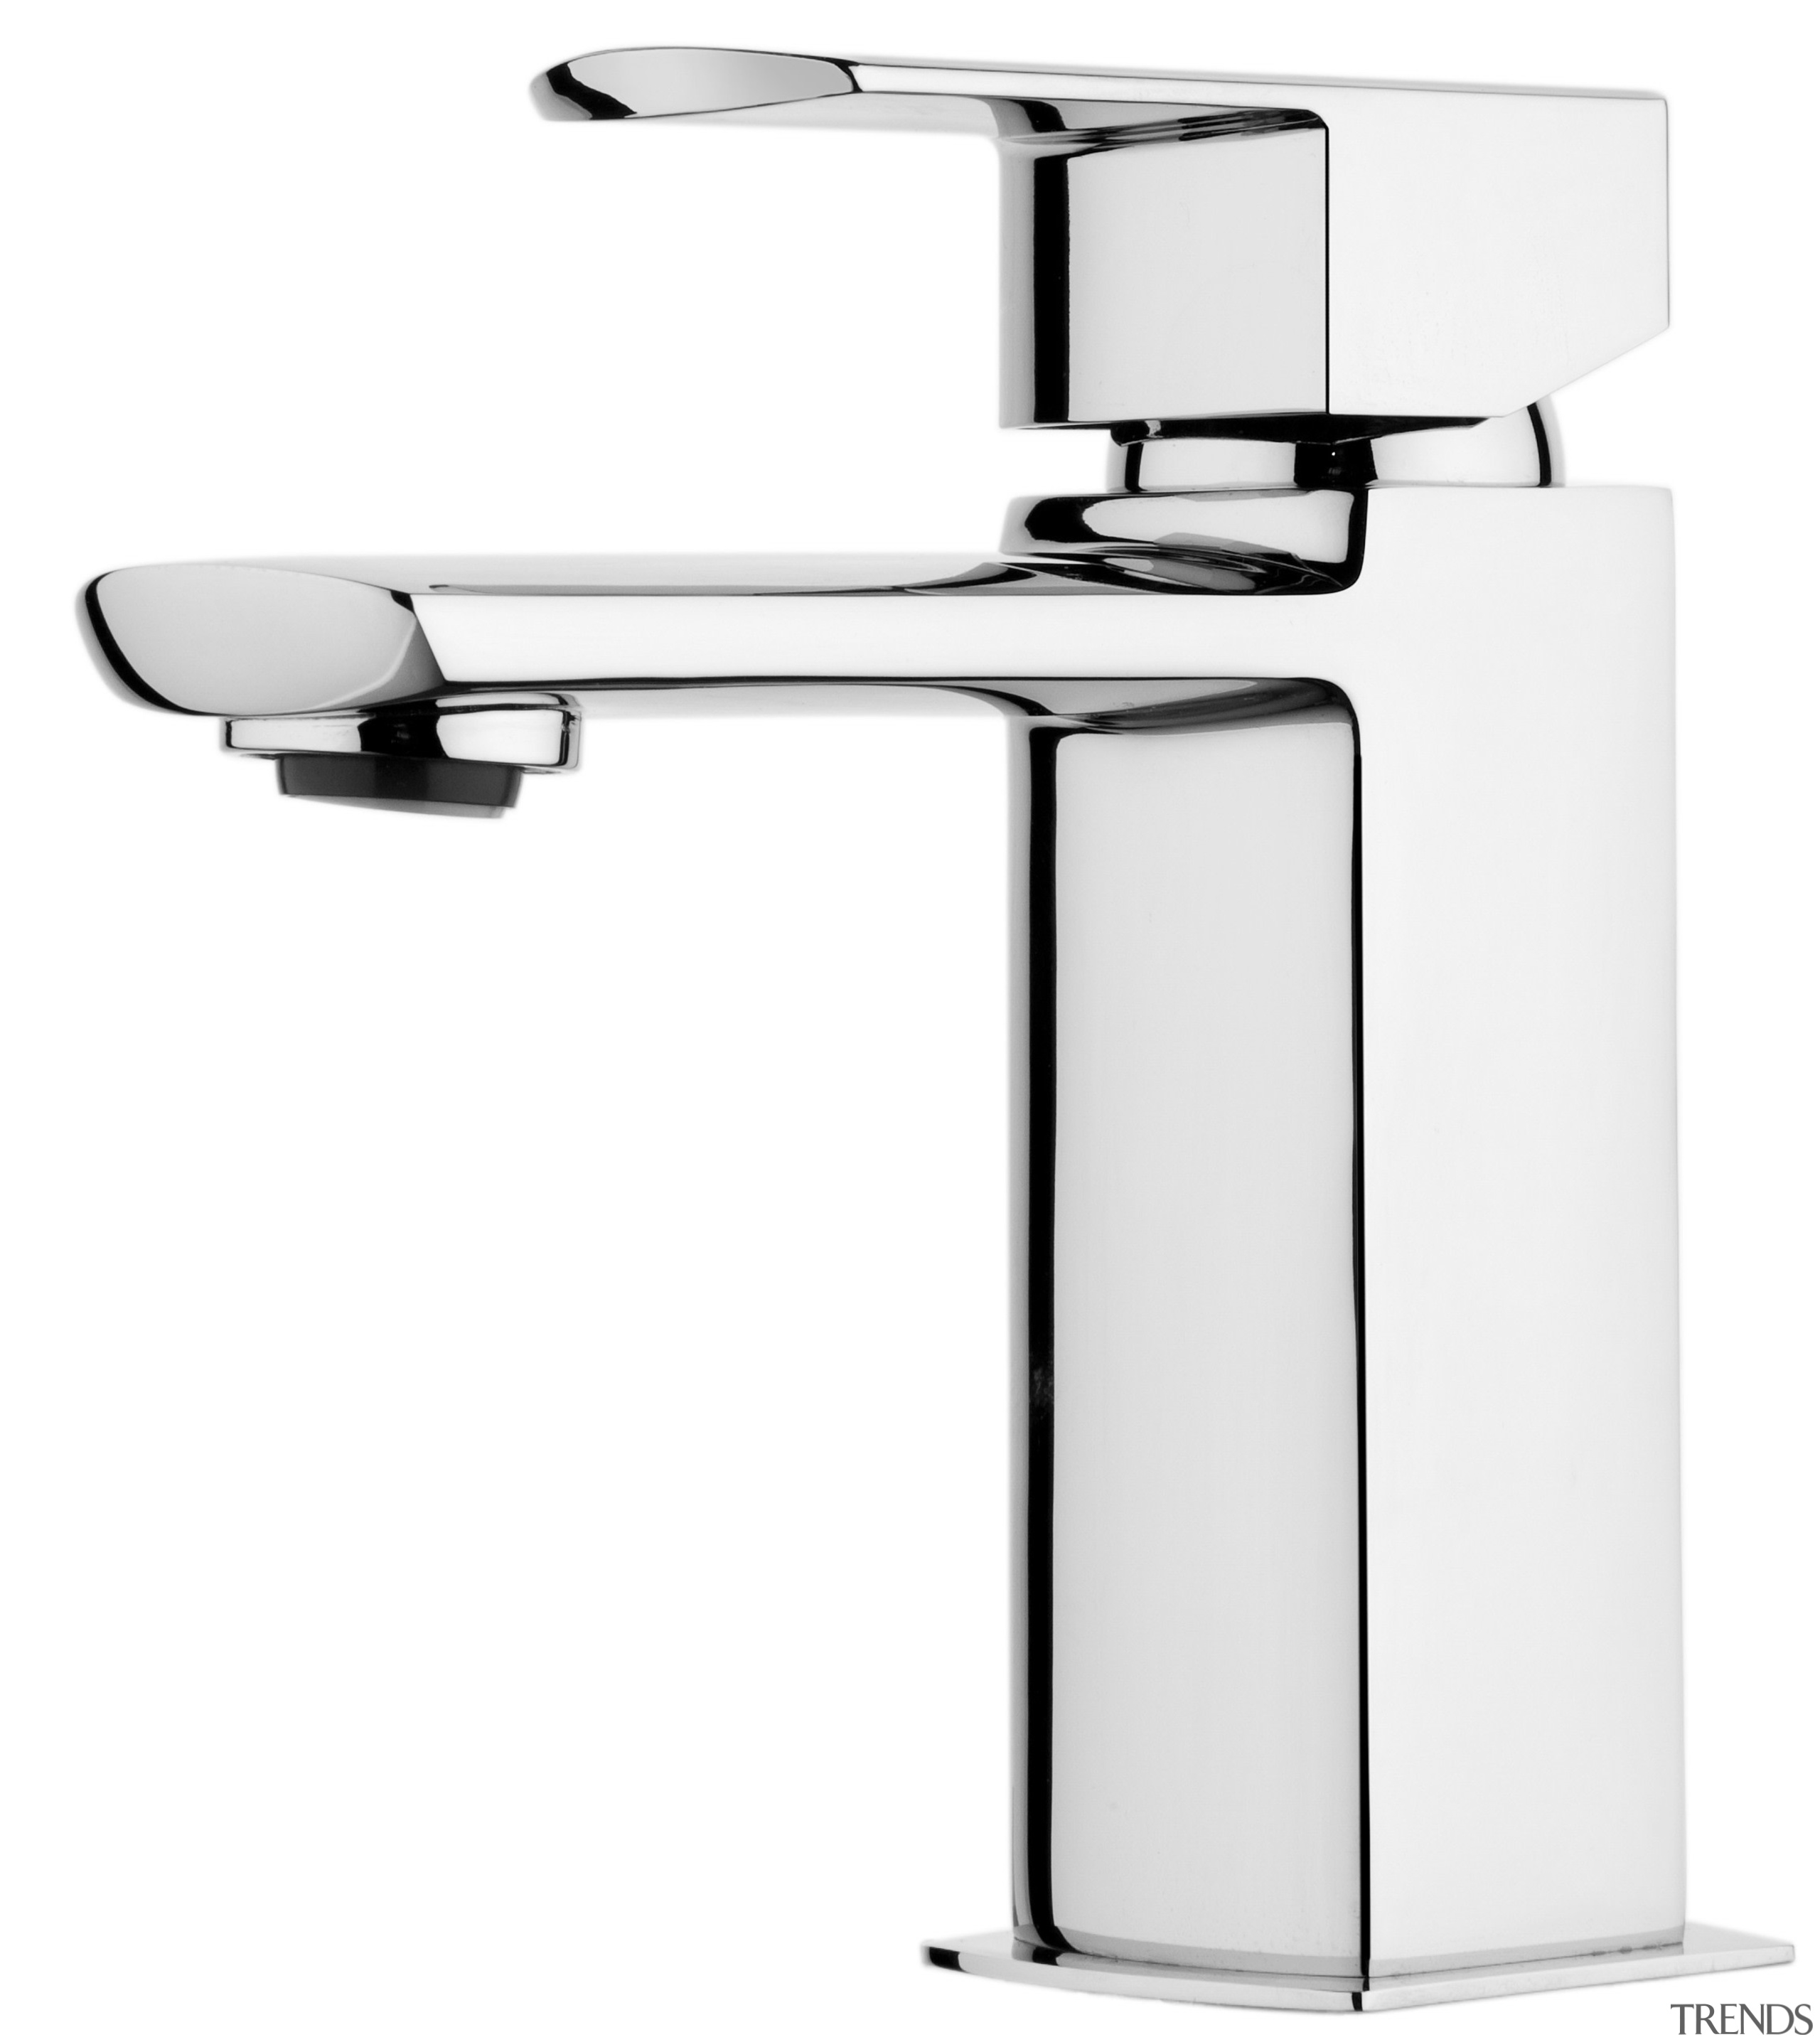 For more information, please visit www.foreno.co.nz or angle, bathroom accessory, bathtub accessory, hardware, plumbing fixture, product, product design, tap, white